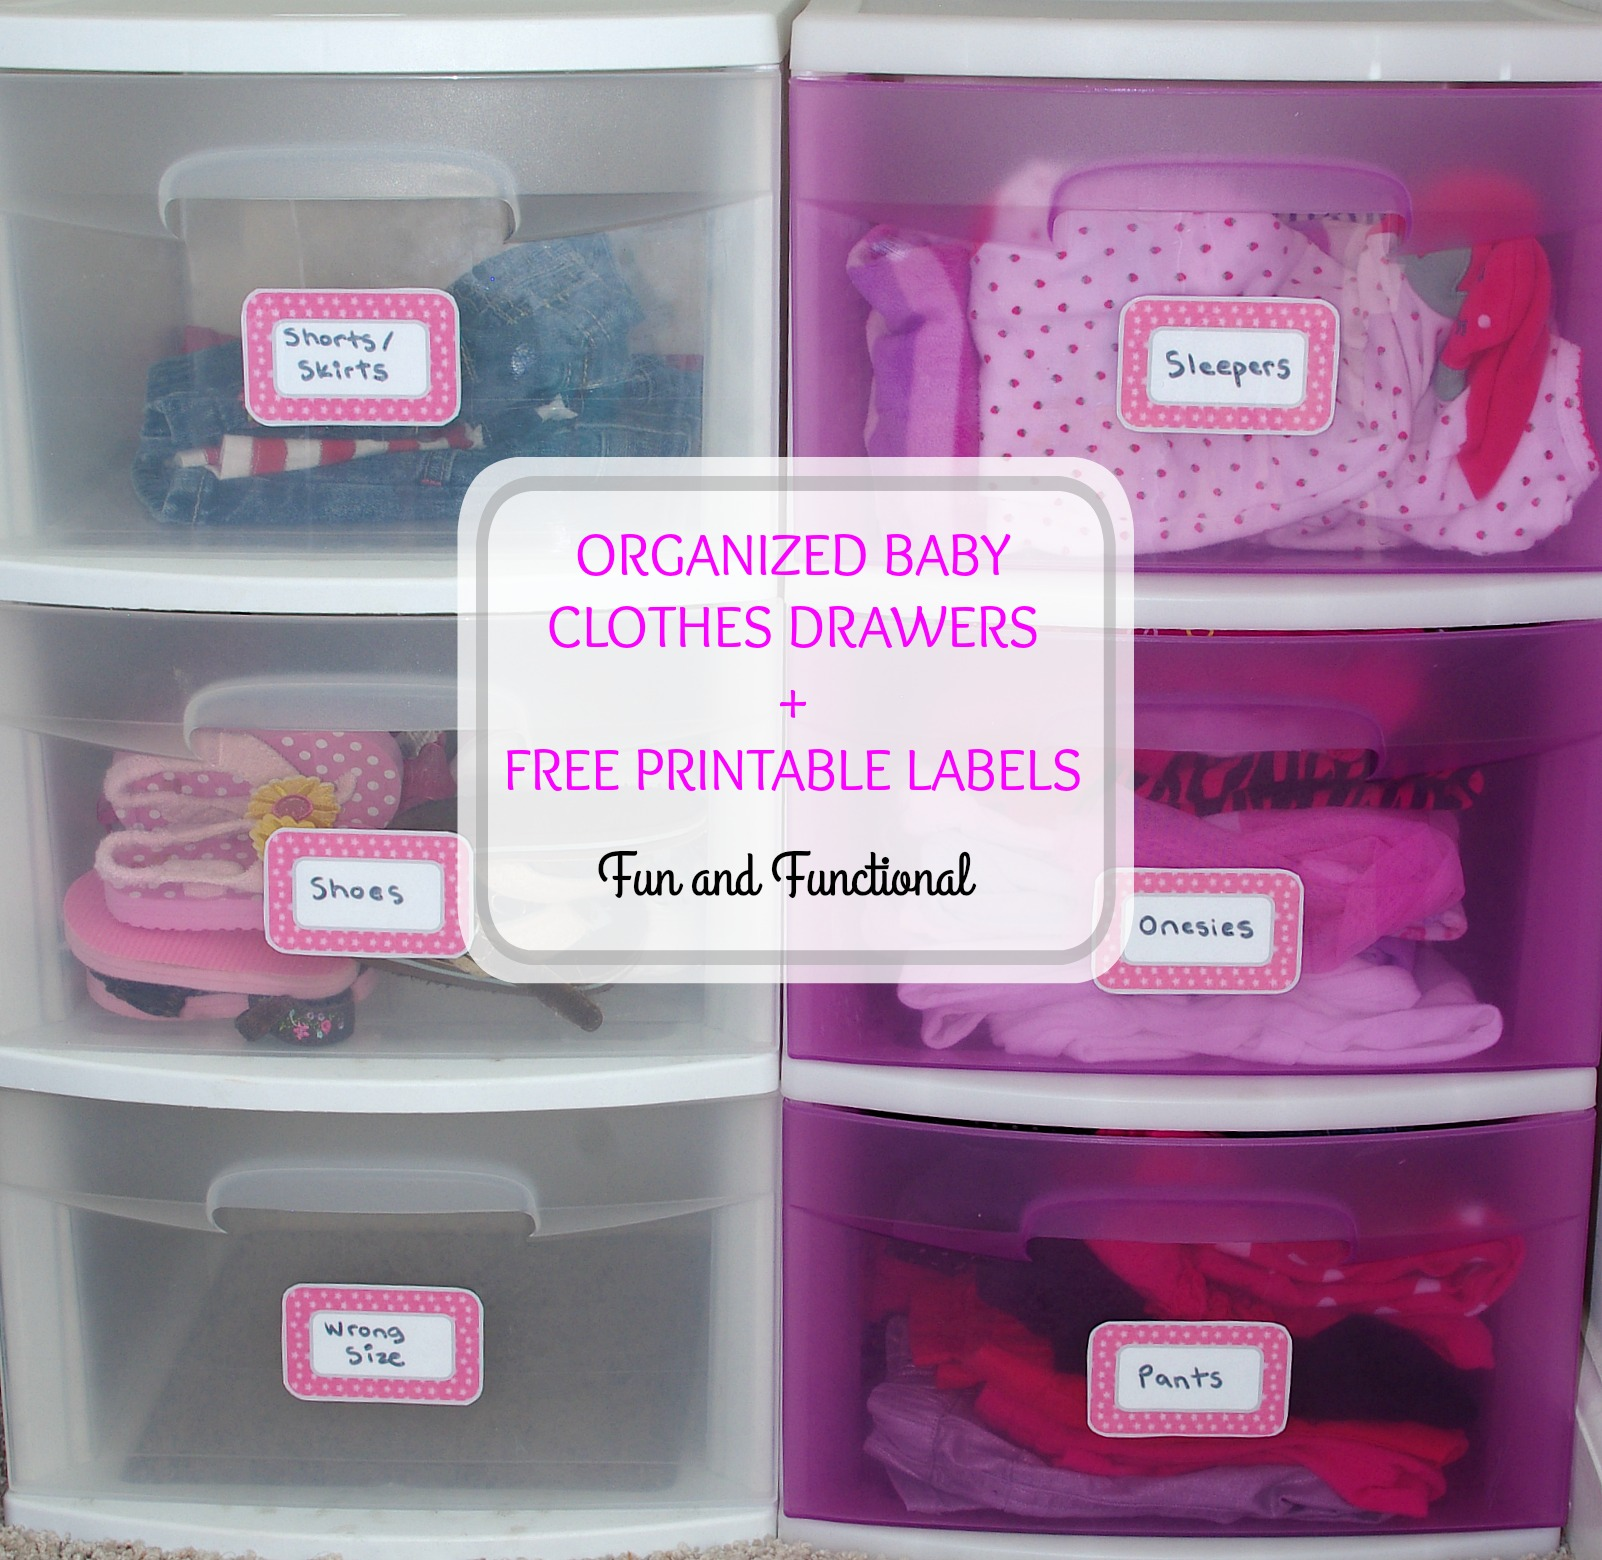 Organized Baby Clothes Drawers Free Printable Labels